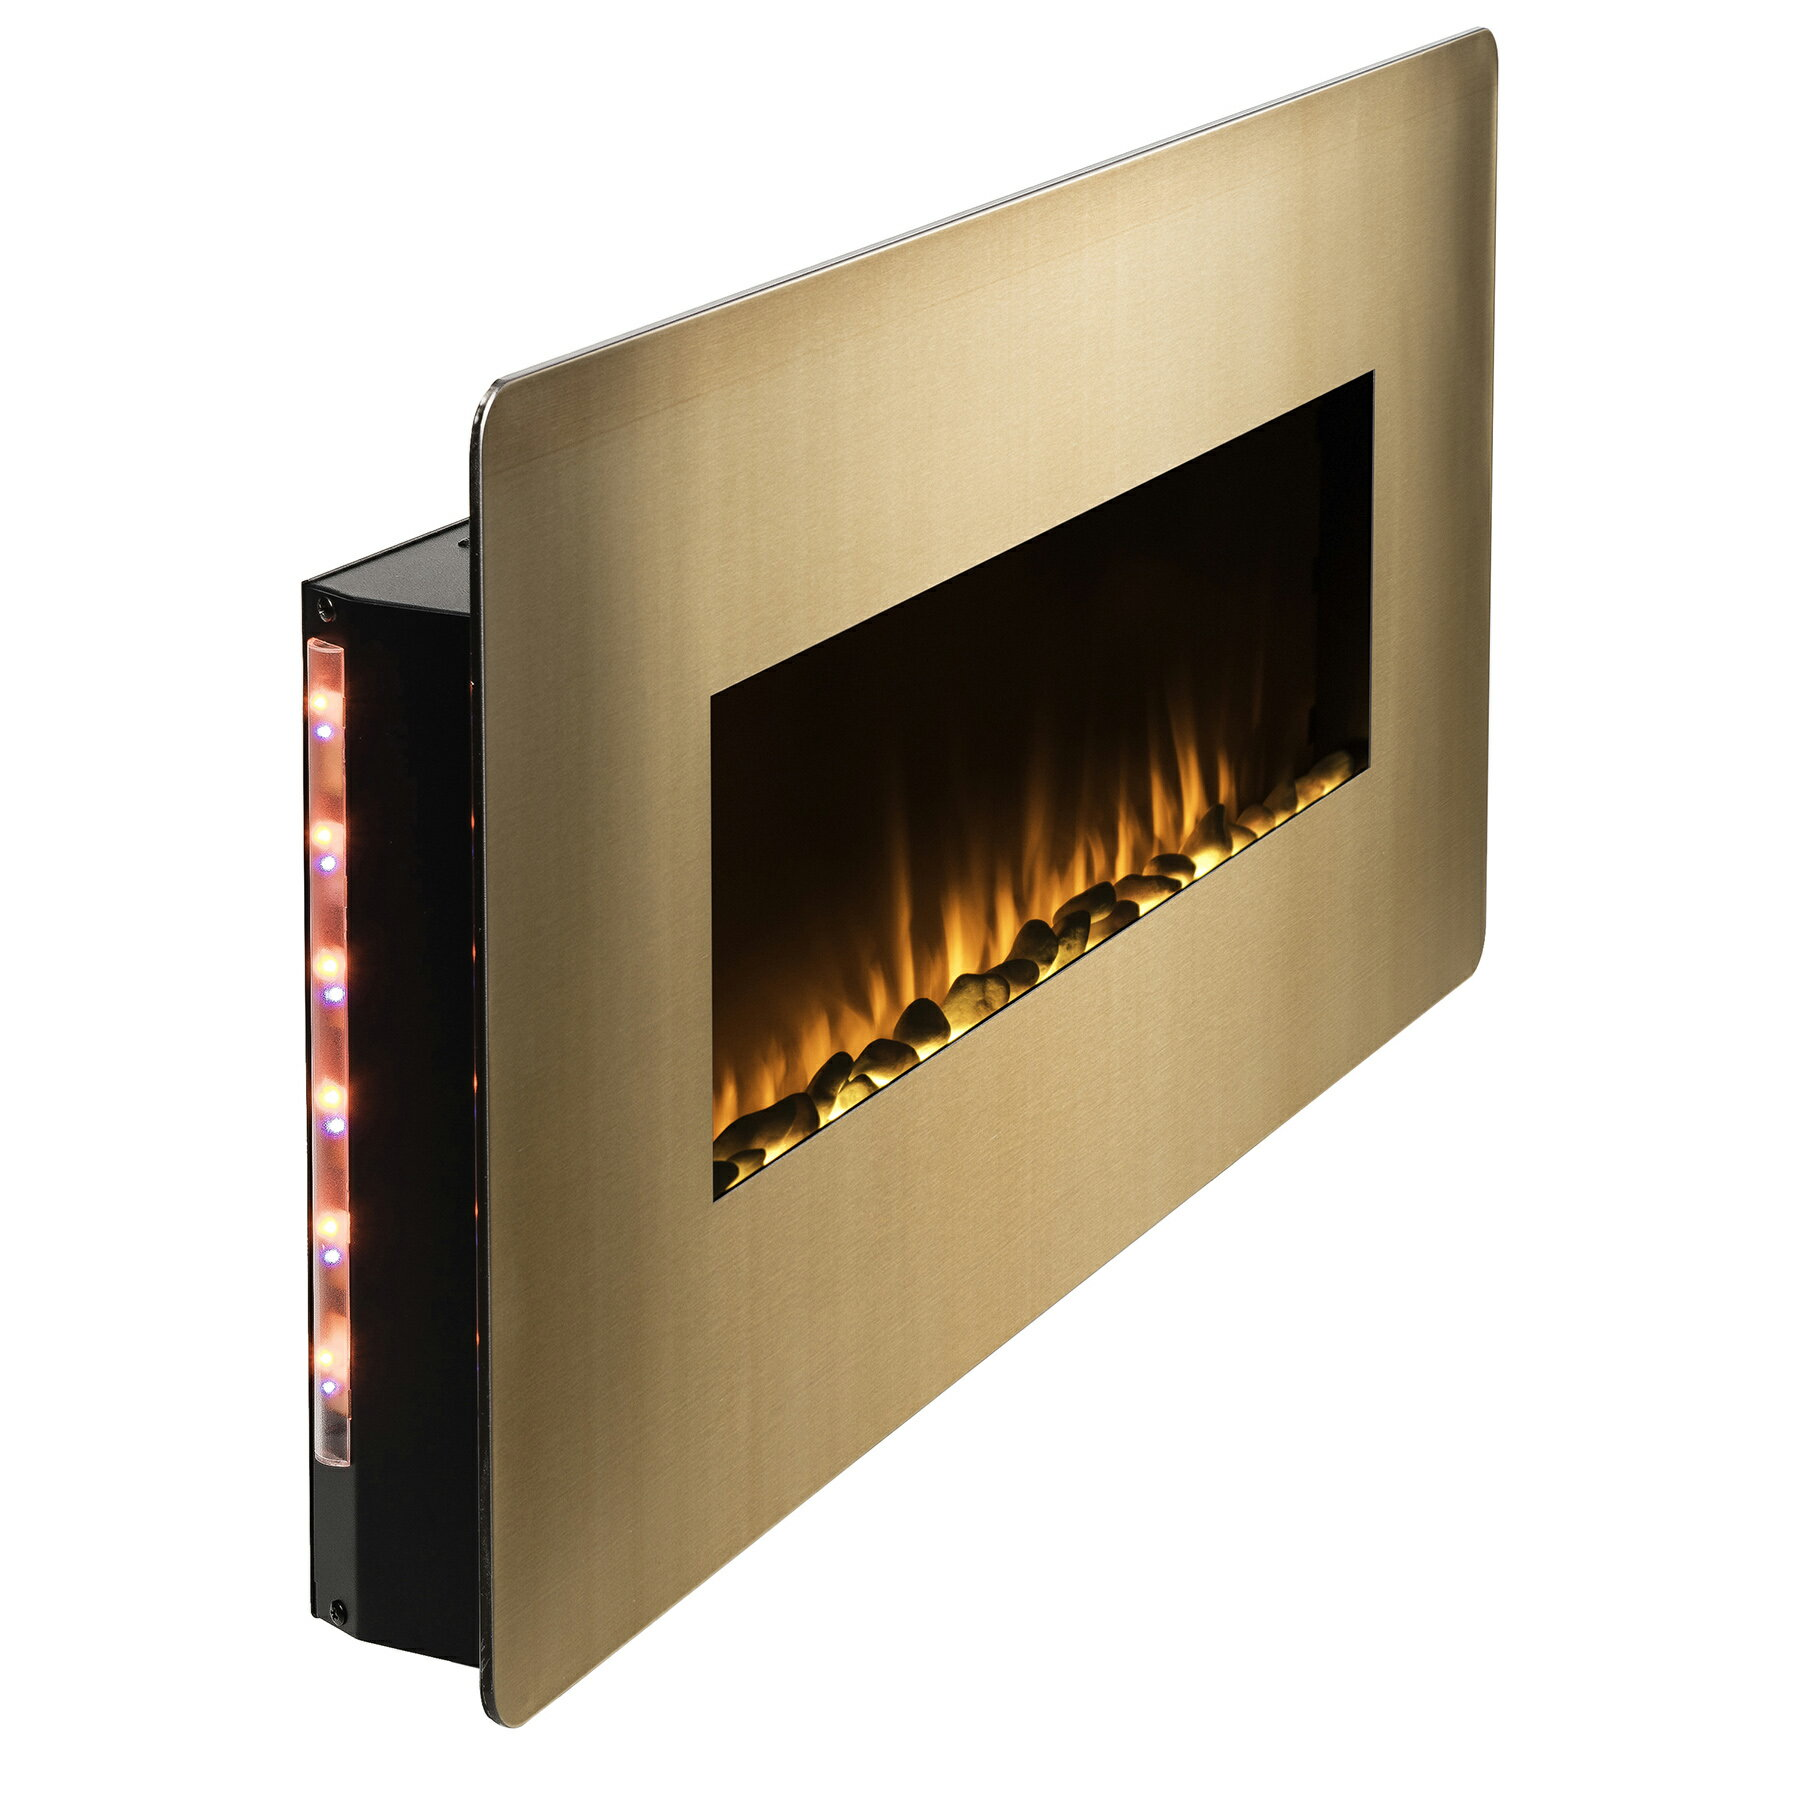 "AKDY 36"" Freestanding Wall Mount Electric Fireplace 3-in-1 Fuel Bed w/ Remote Control 2"